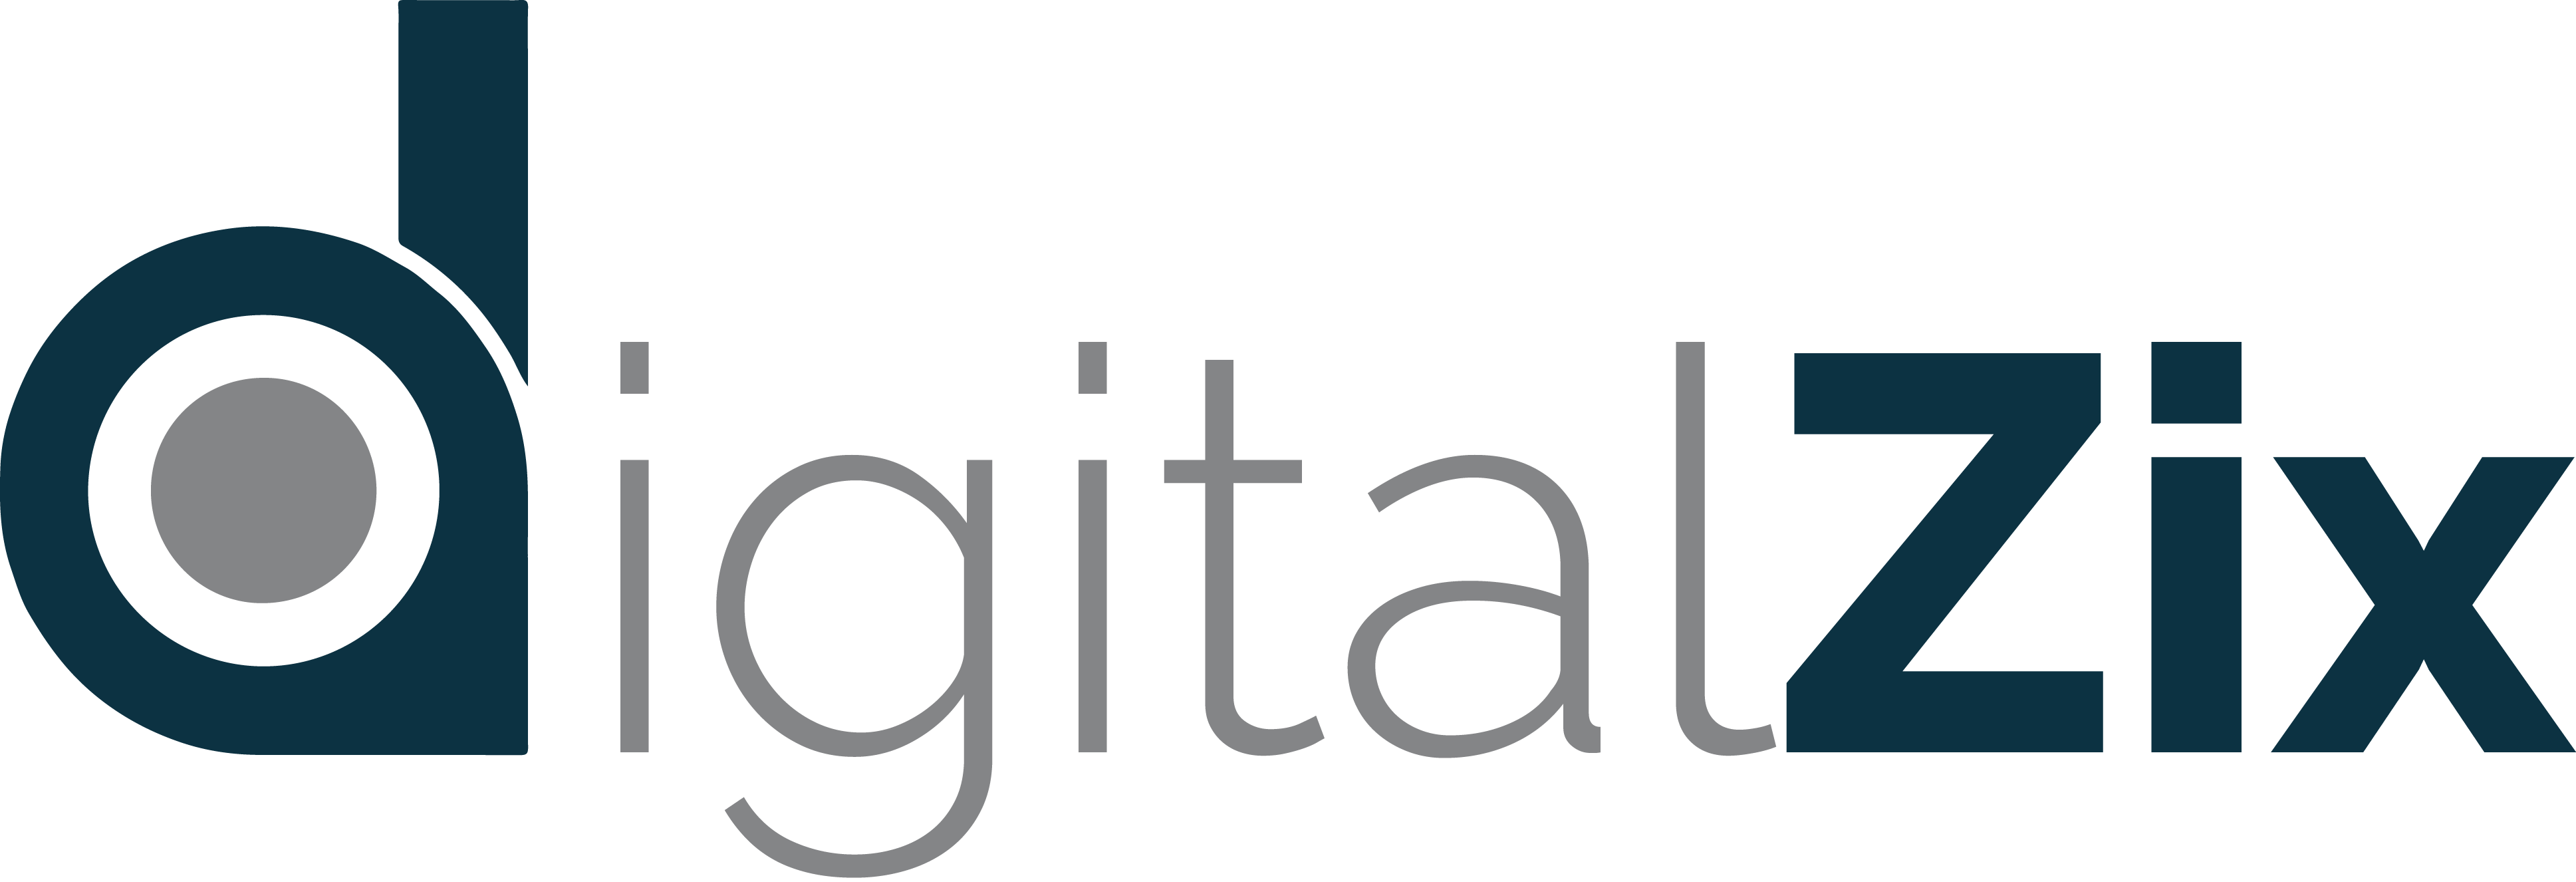 DigiralZix Creative and Digital Marketing Agency